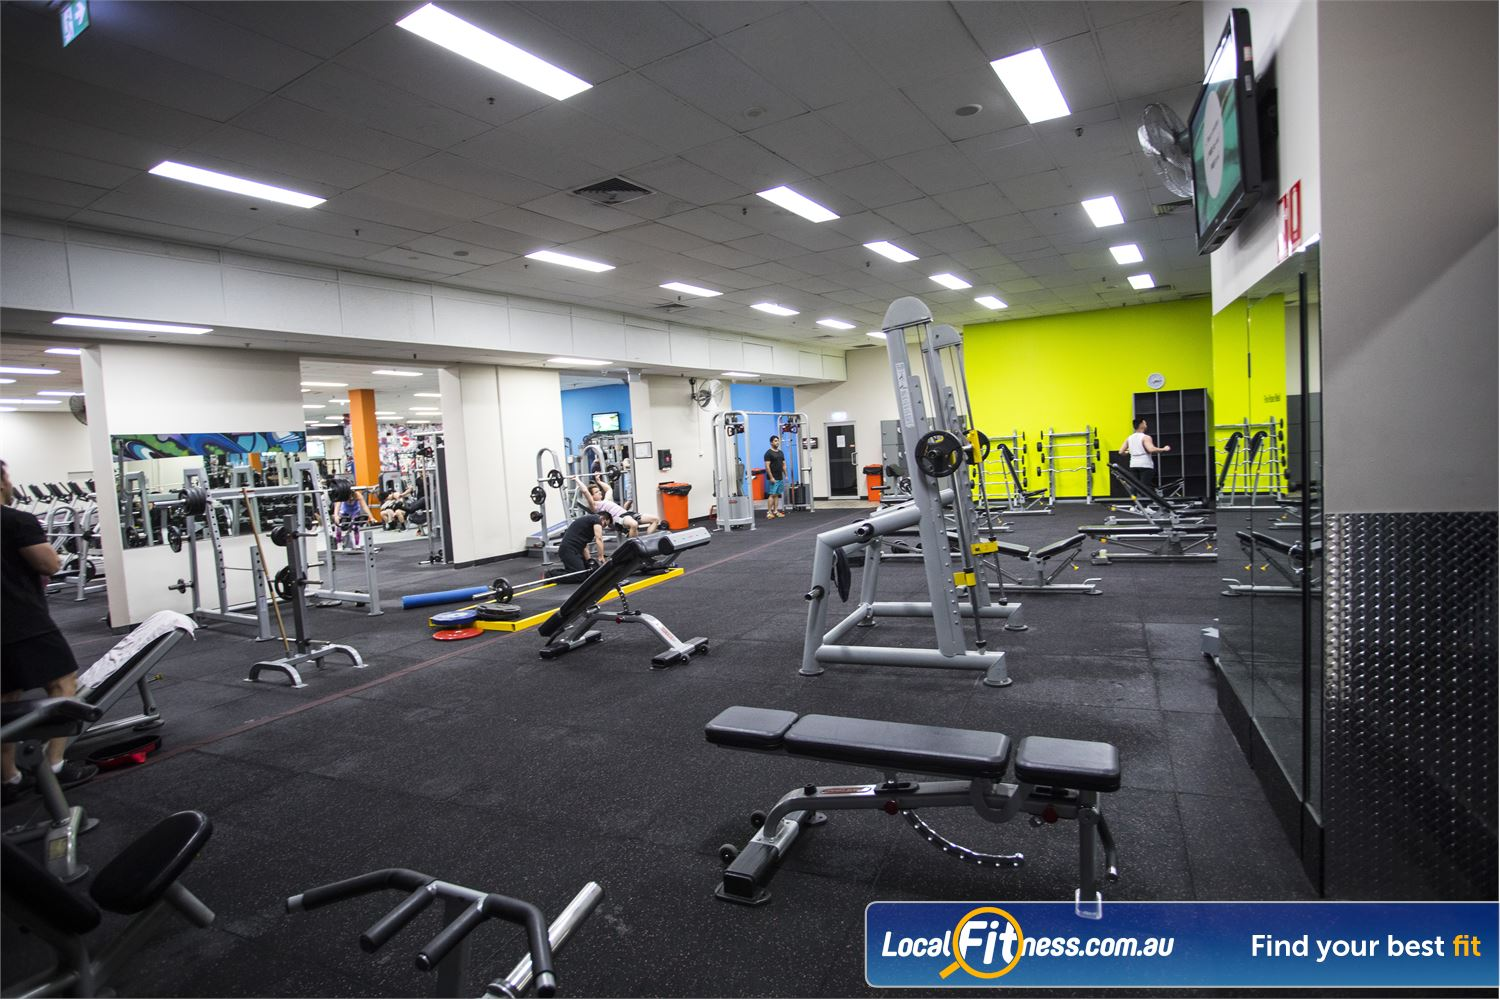 Fit n Fast Sydney Our bright, spacious and modern FNF Liverpool St Sydney gym.